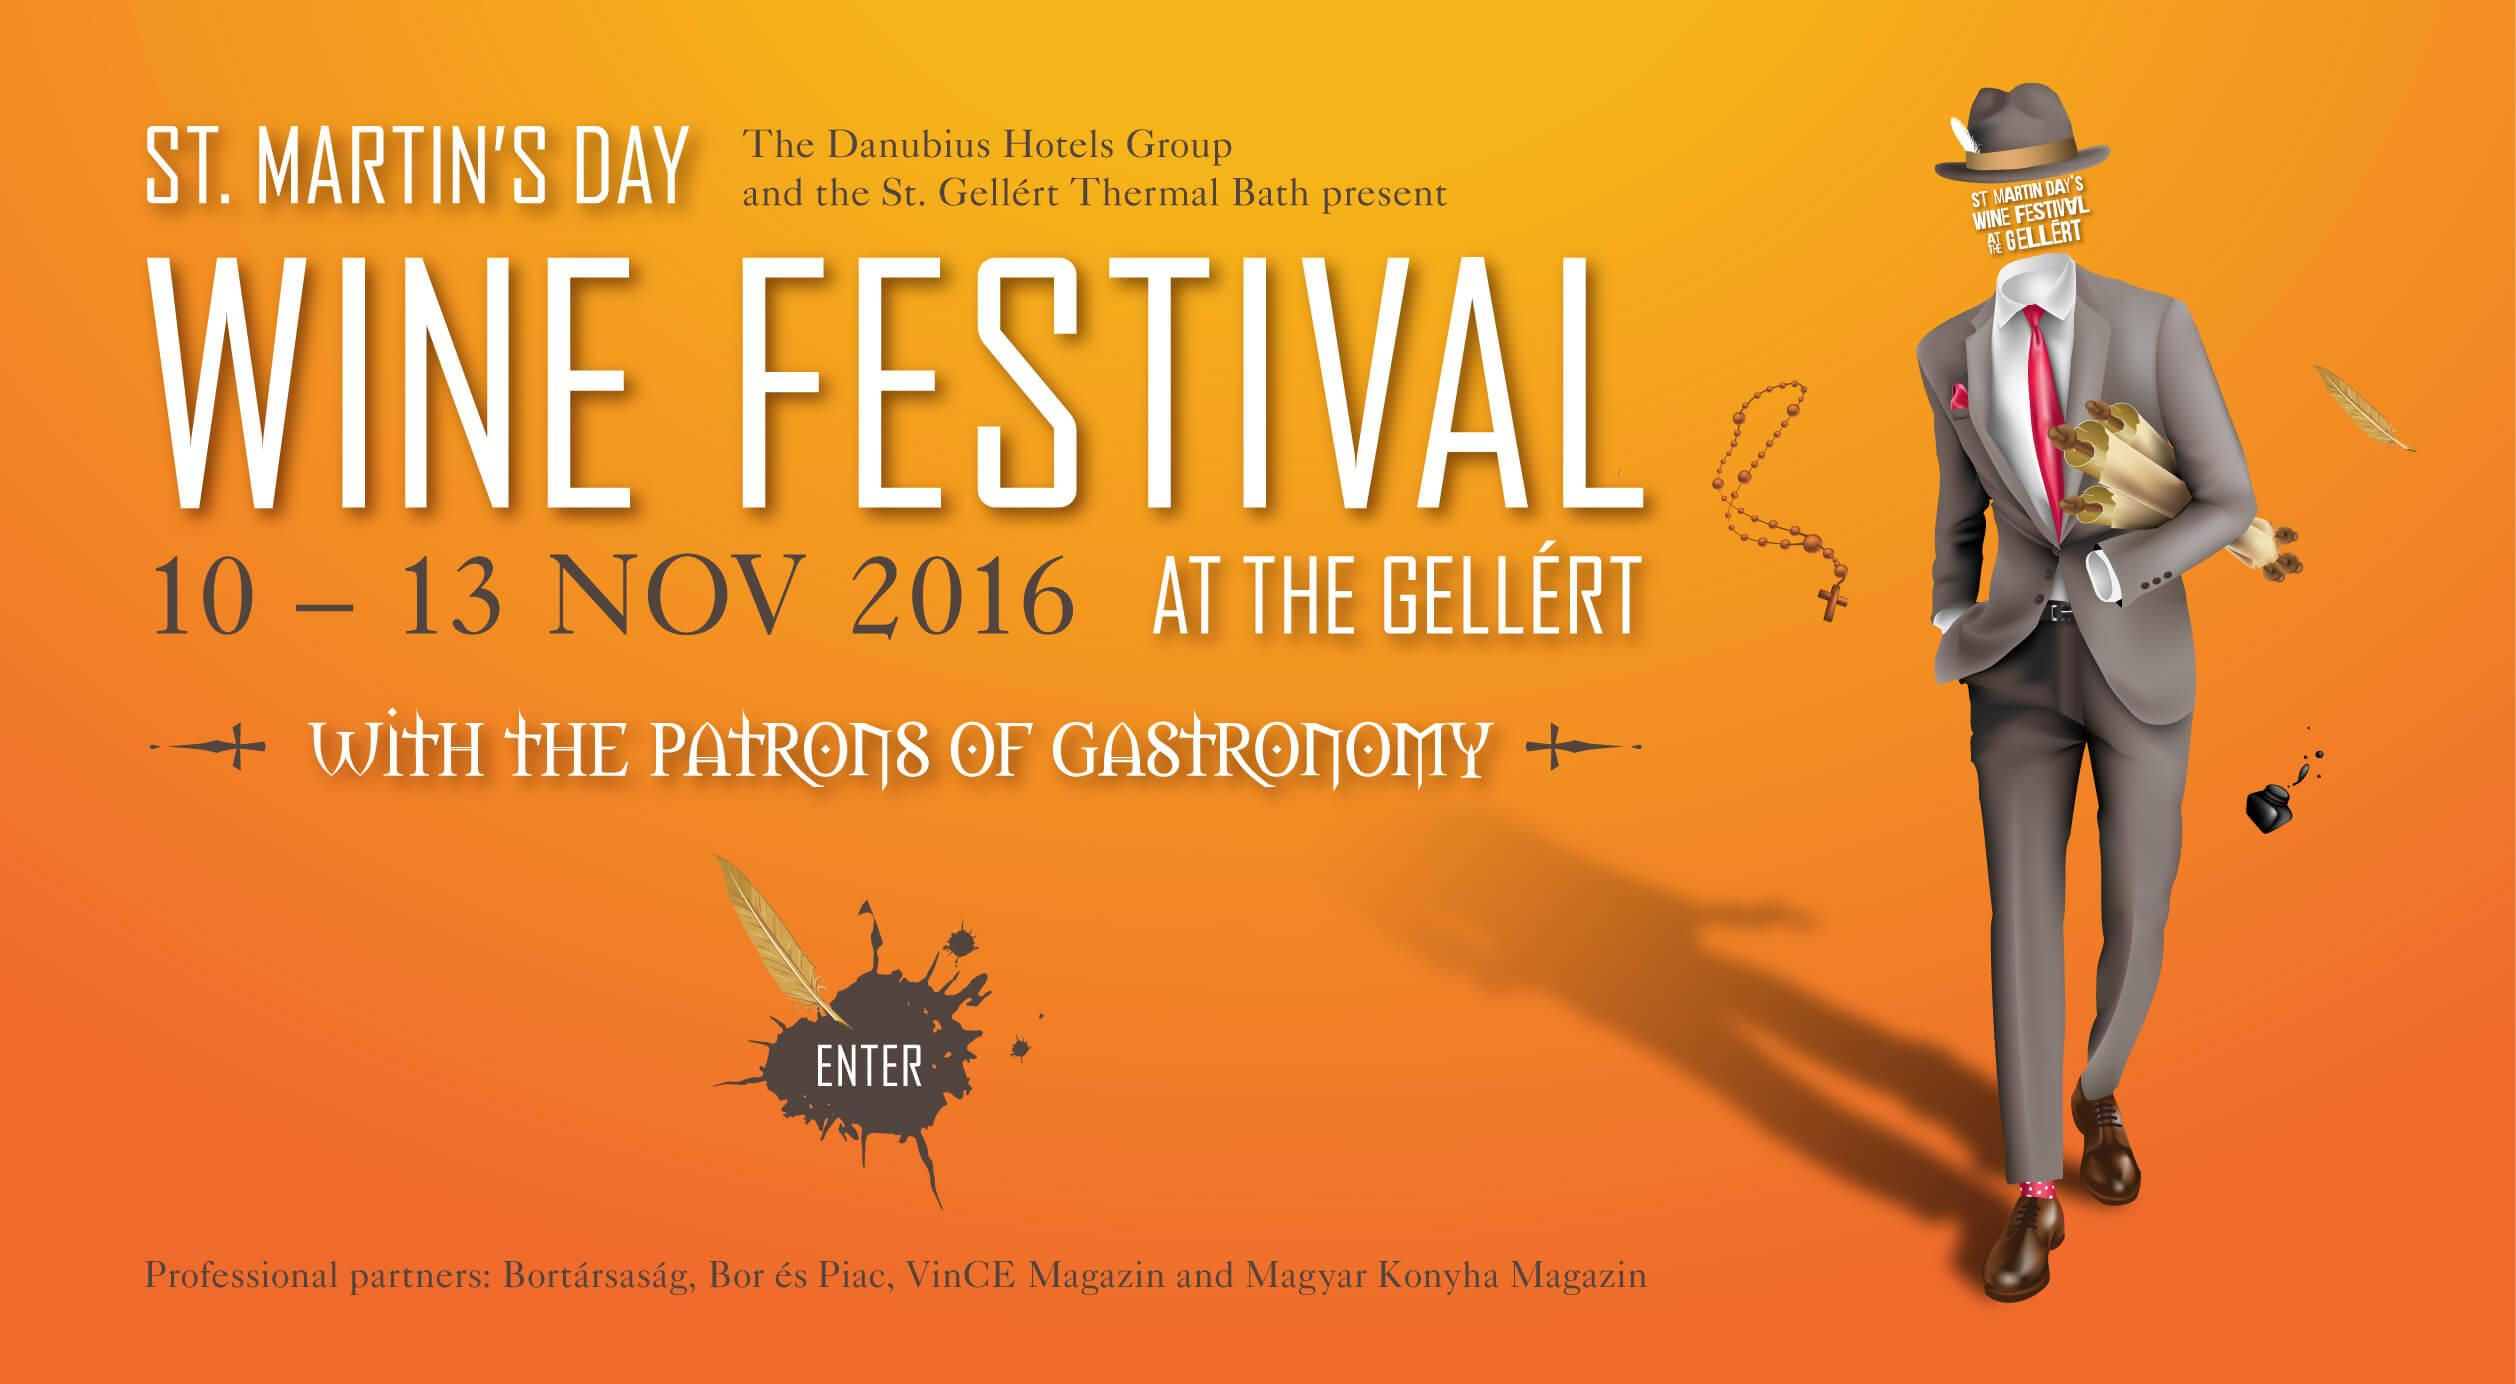 Sold Out: St. Martin's Day Wine Festival, Gellért Hotel, 10 - 13 November